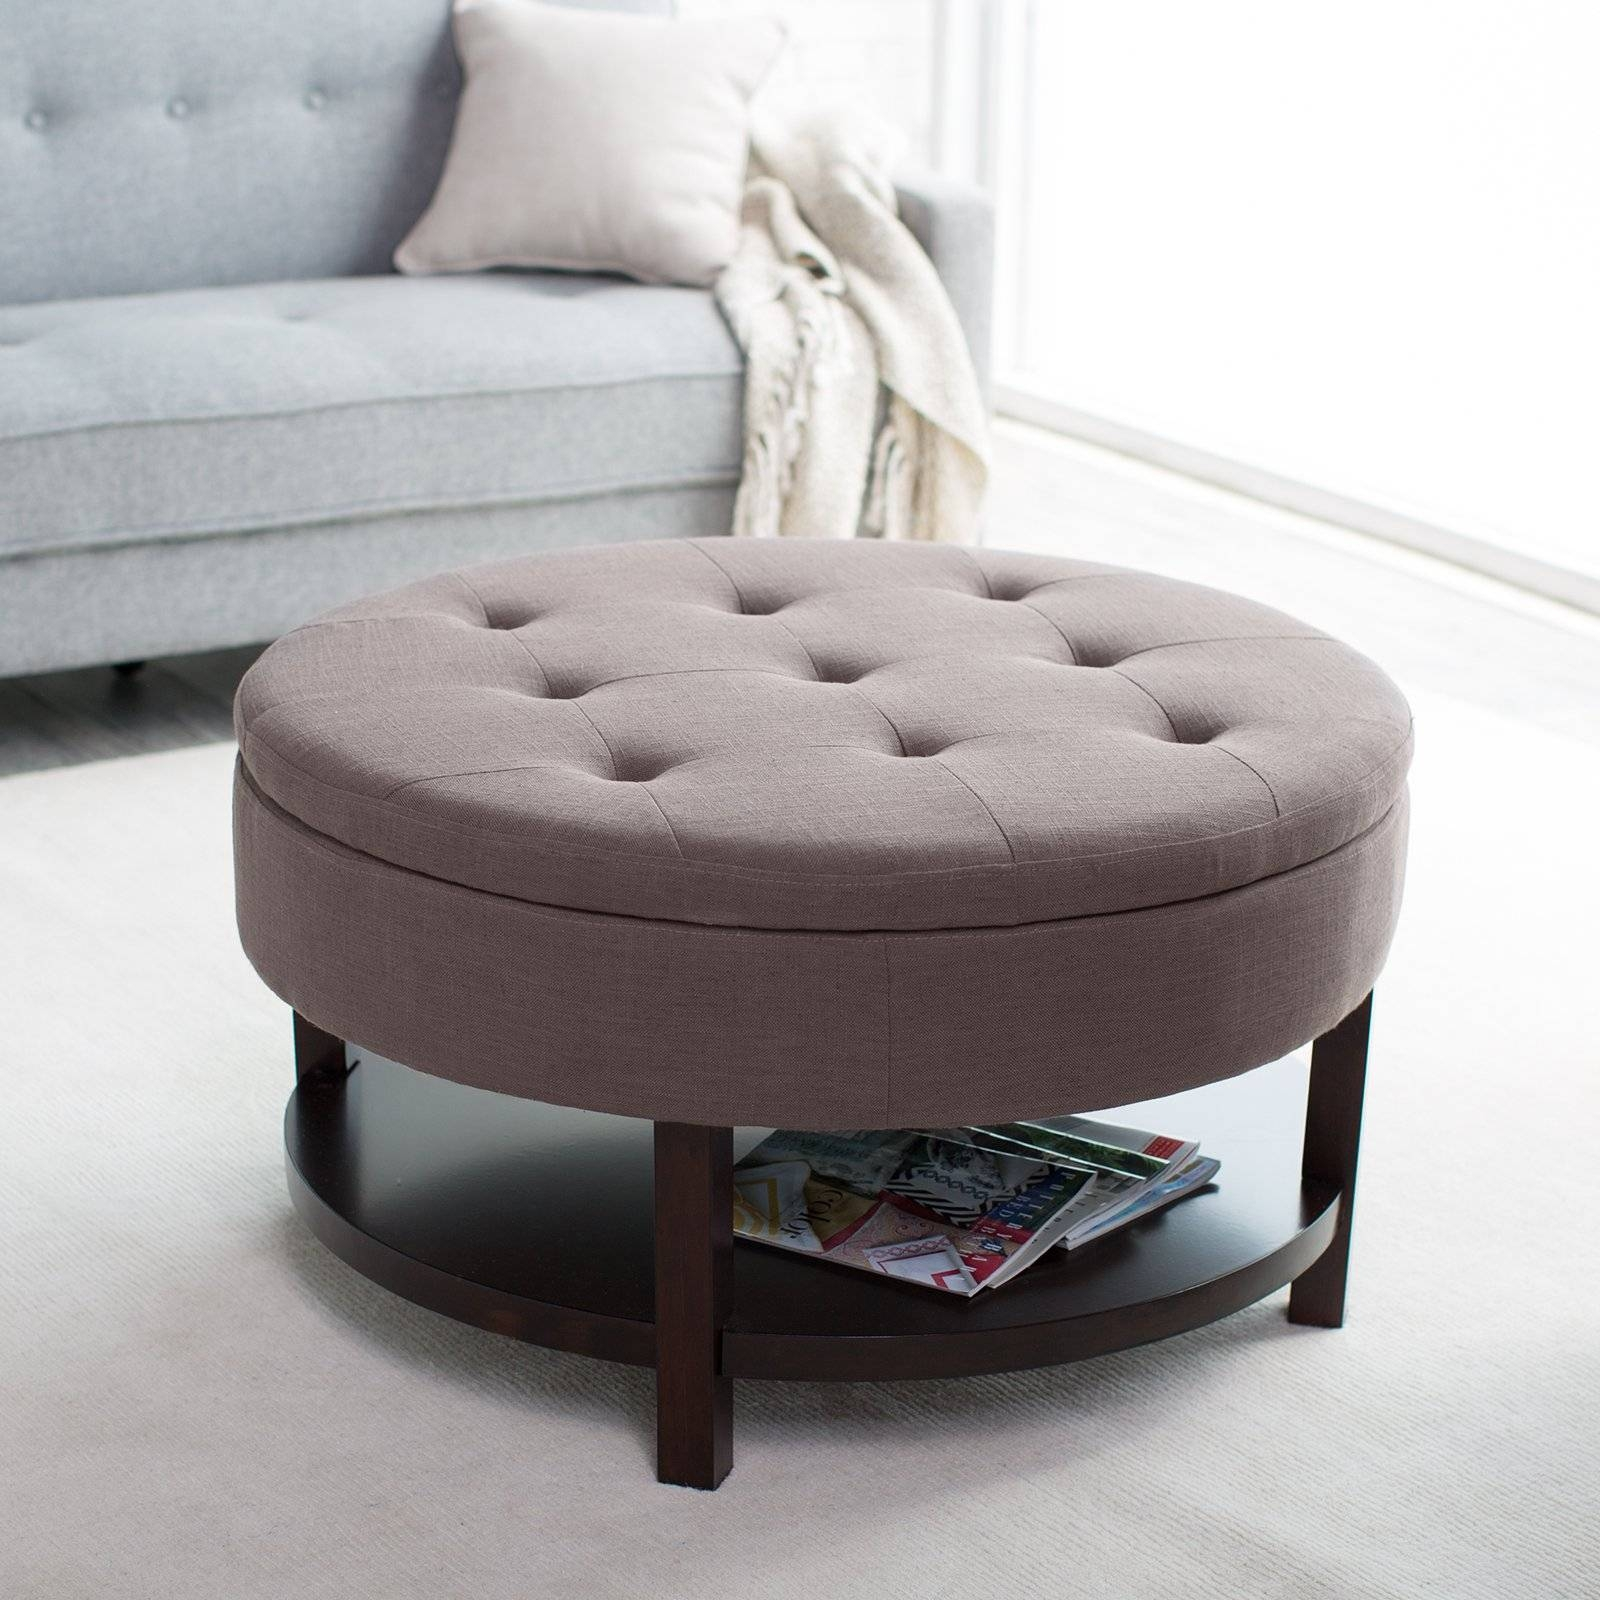 Coffee Table: Awesome Round Ottoman Coffee Table Upholstered Round throughout Brown Leather Ottoman Coffee Tables With Storages (Image 15 of 30)